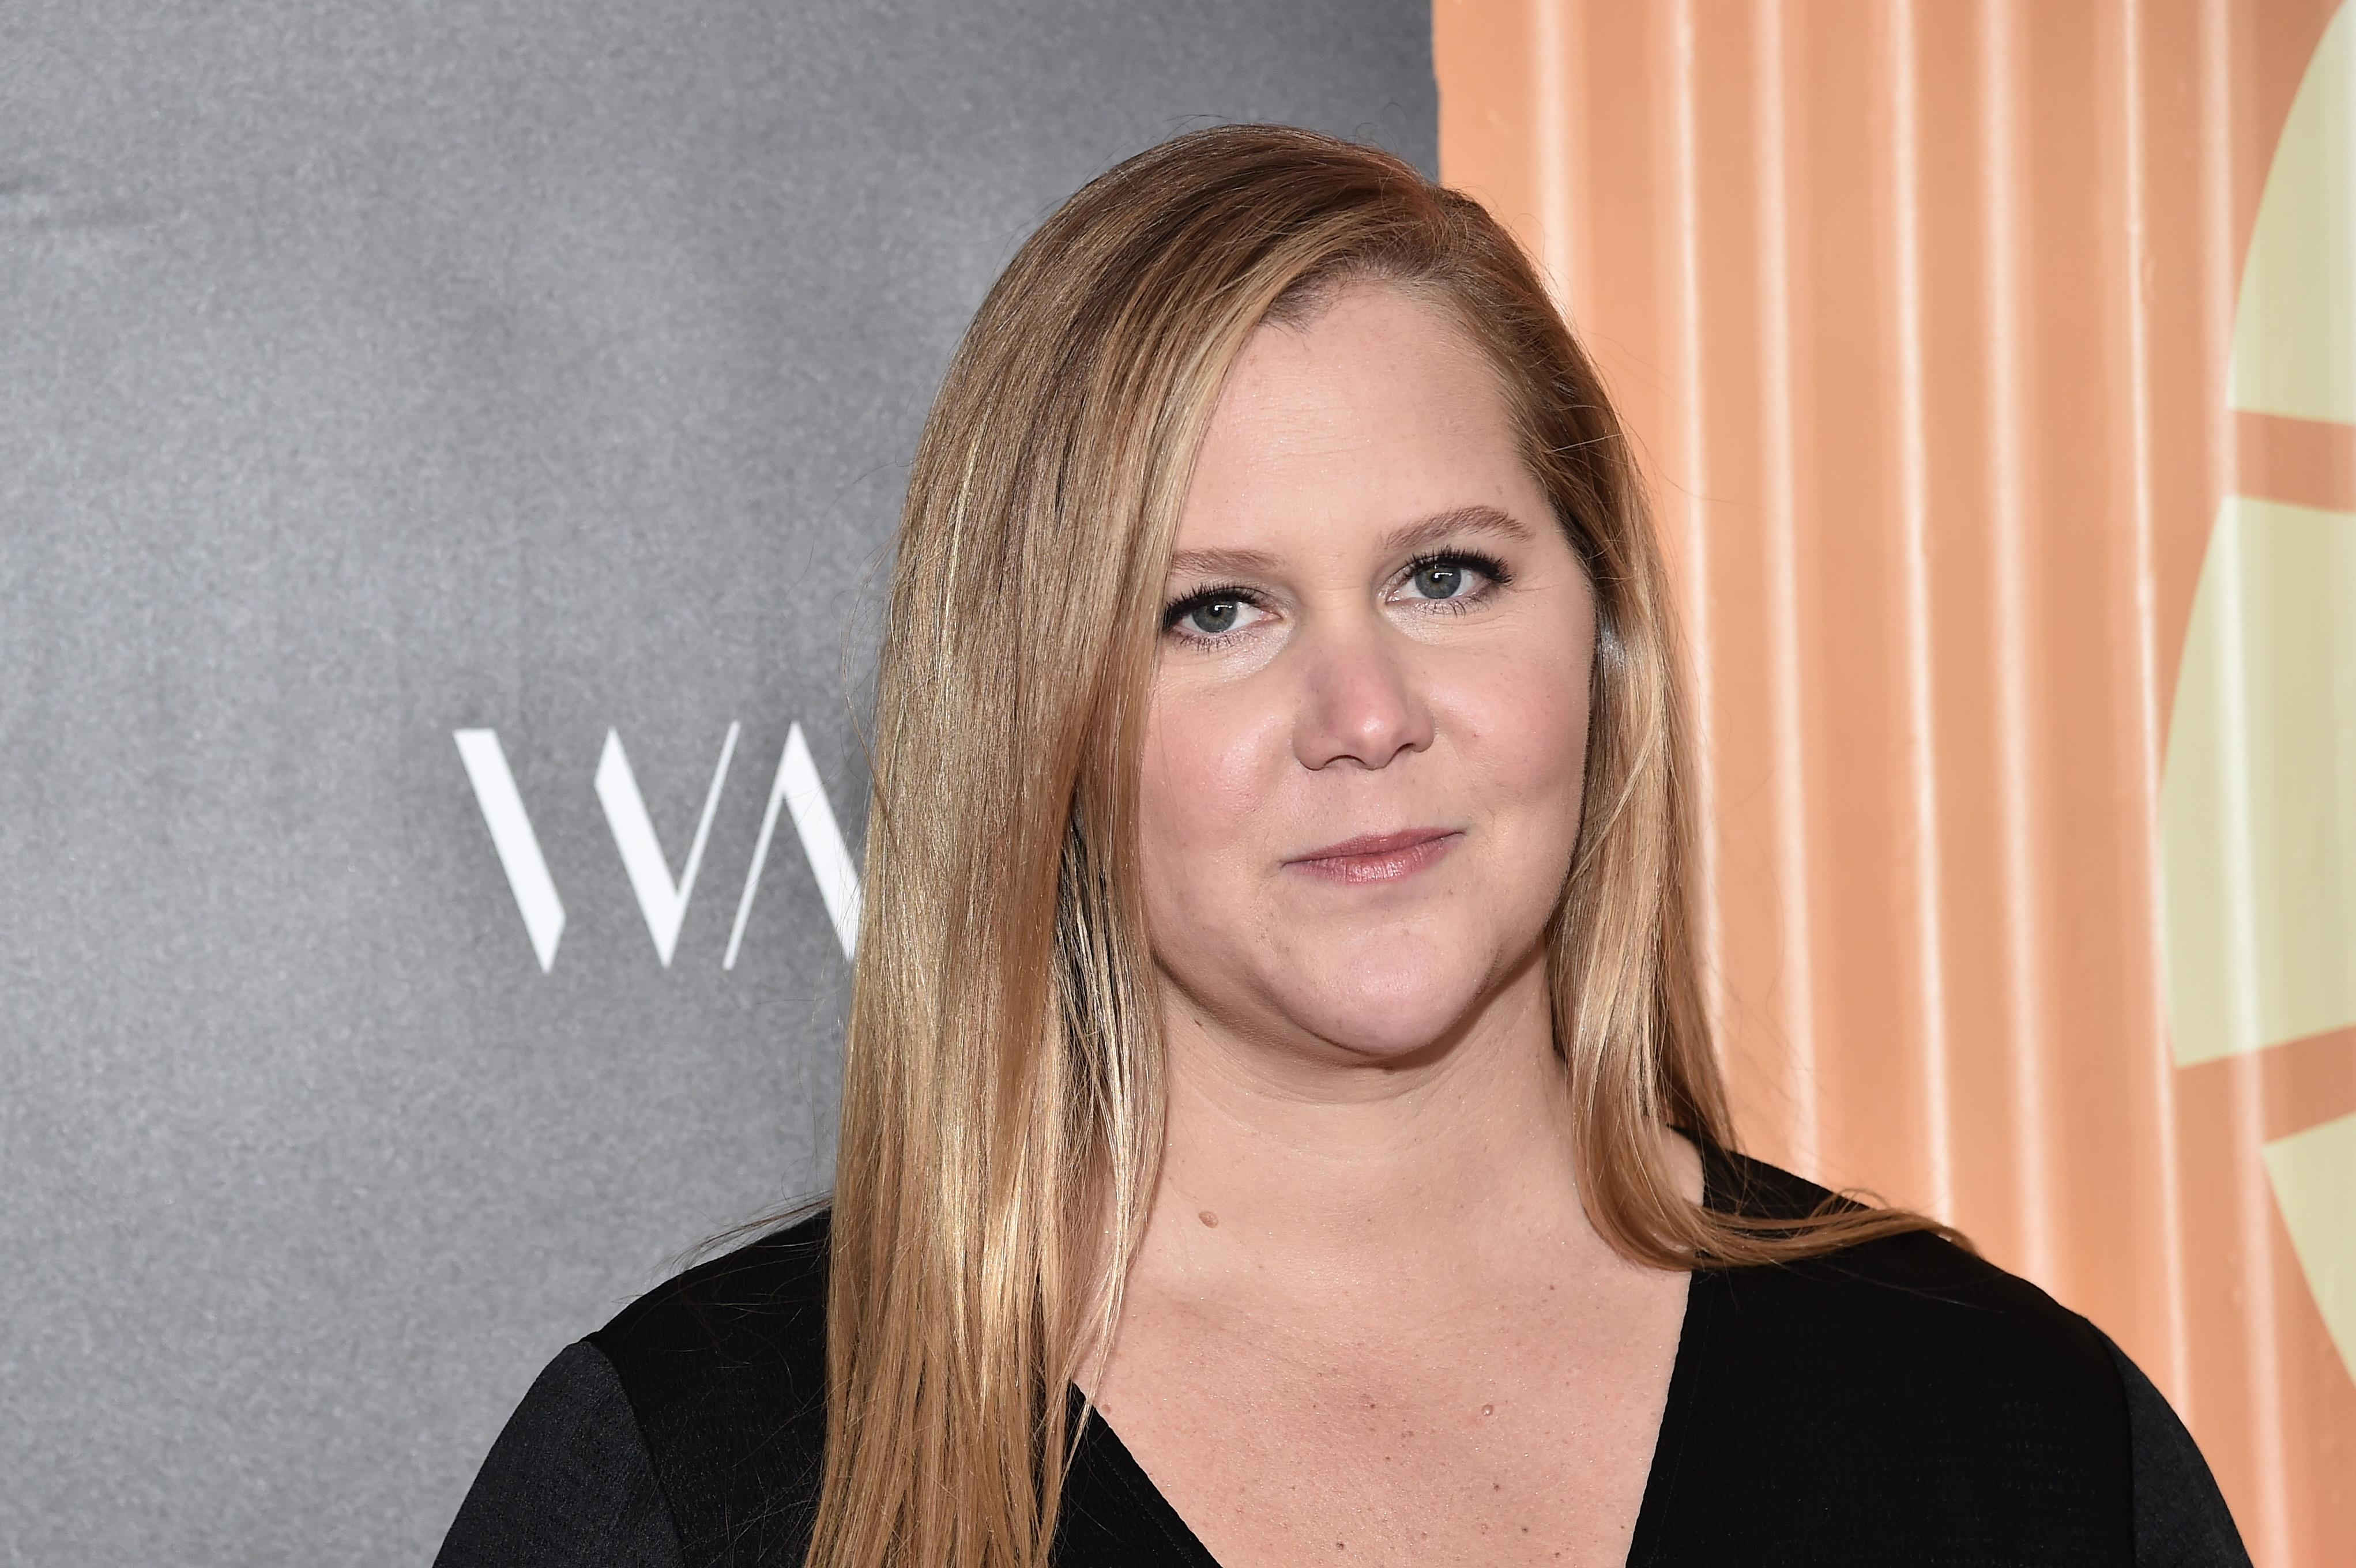 Amy Schumer defends Gayle King against backlash over Kobe Bryant interview question: 'Disgustingly unfair and unacceptable'